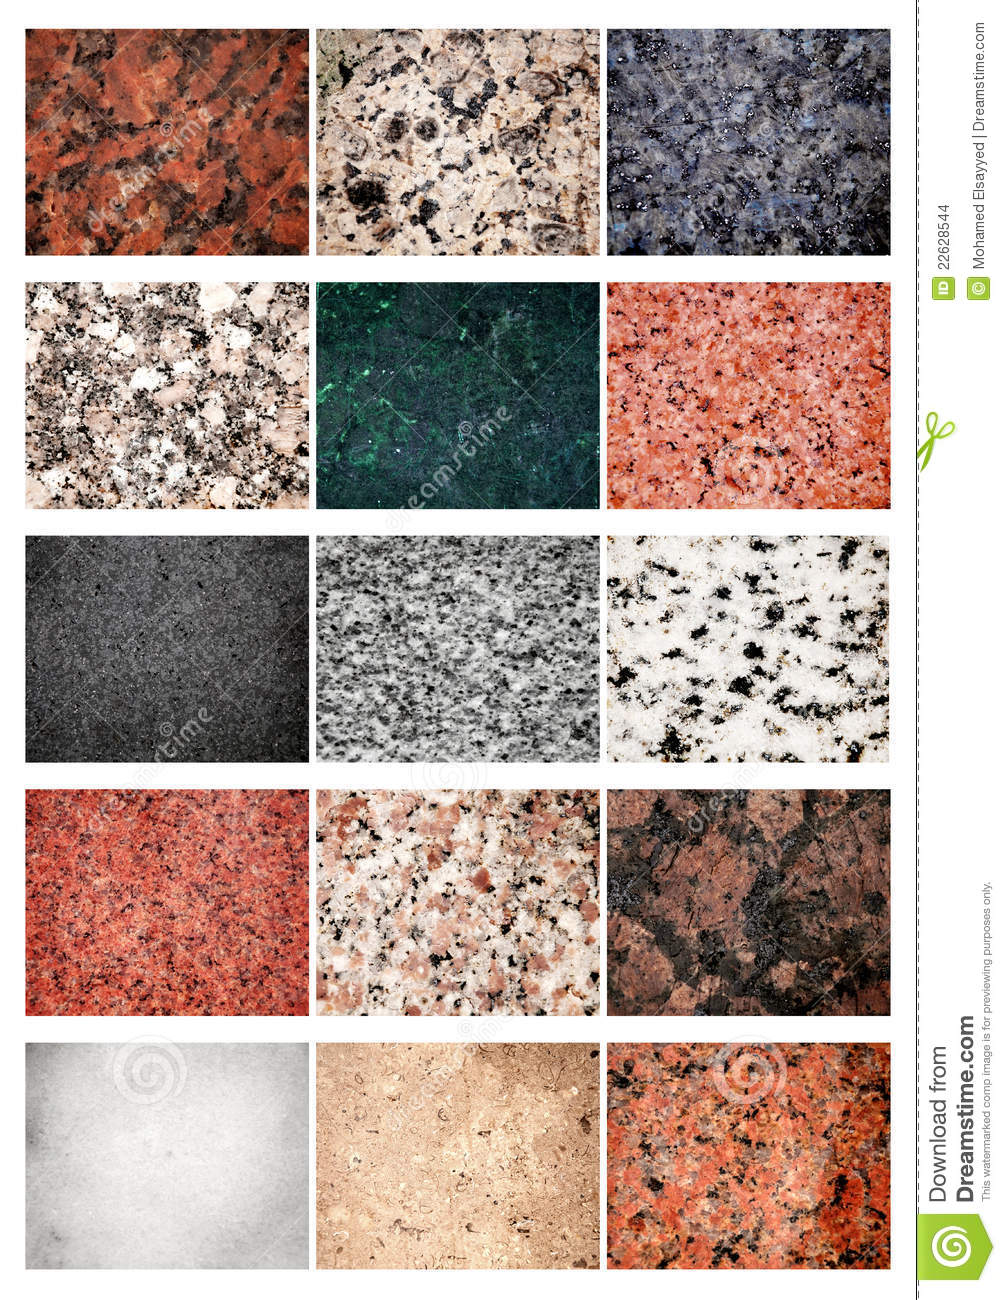 Granit et marbre de collage images stock image 22628544 for Tipos de marmoles y granitos